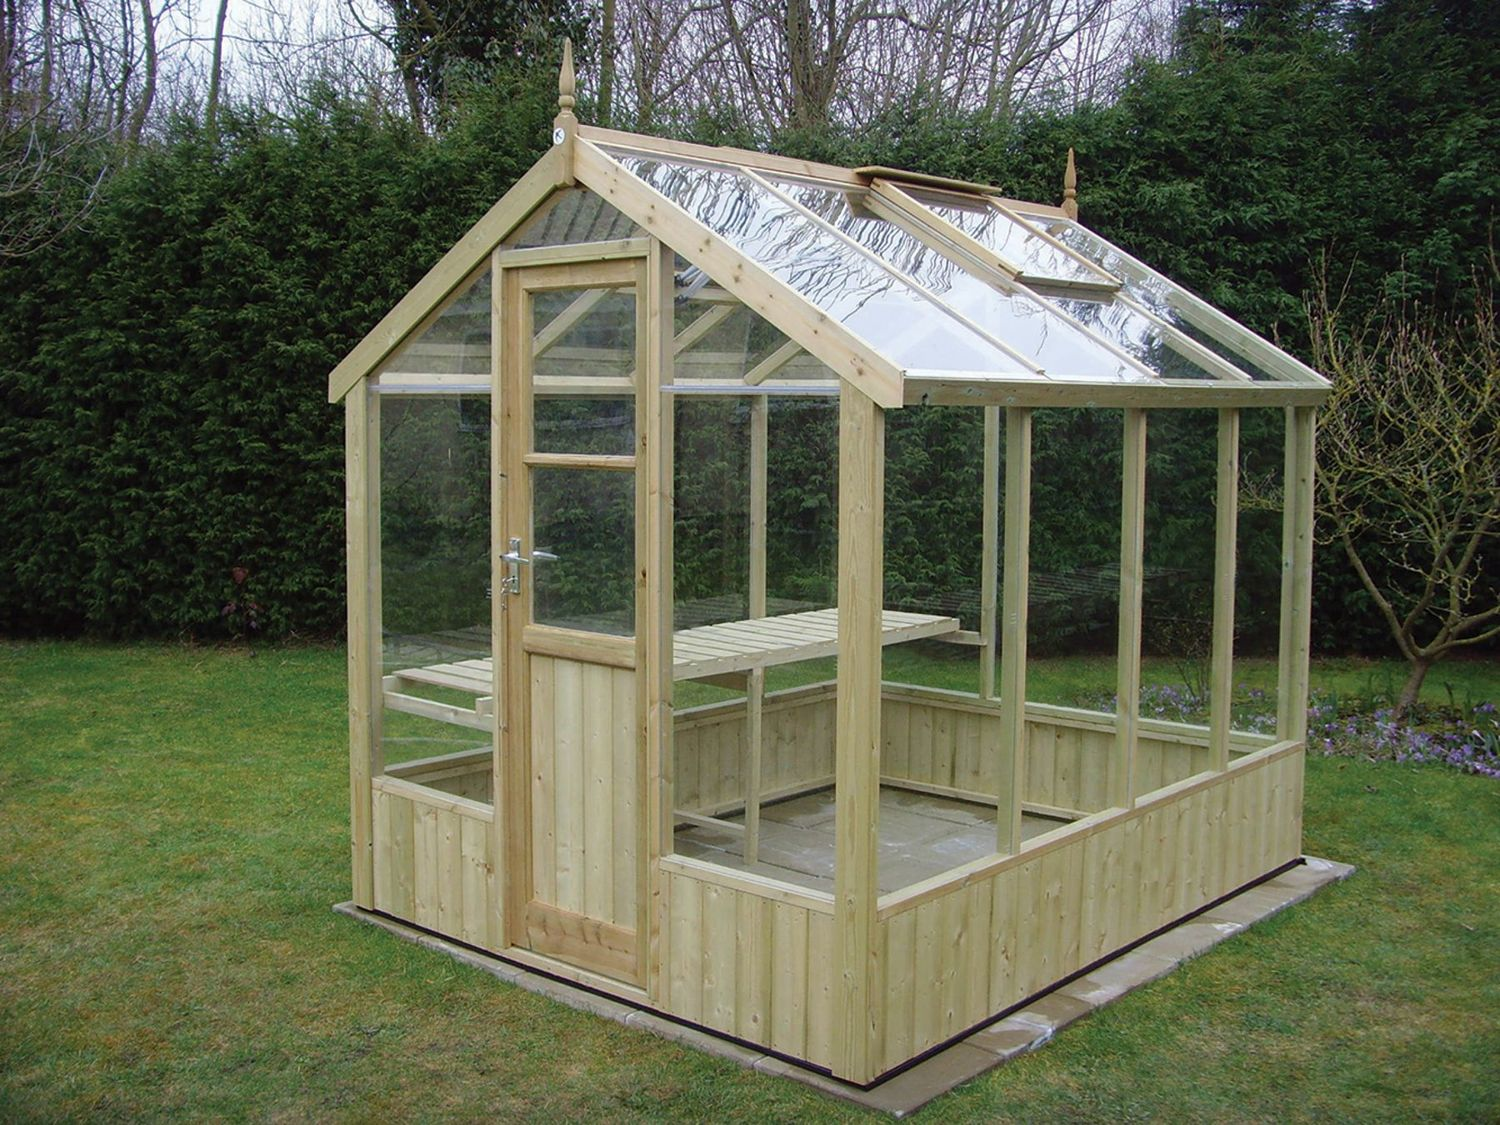 Swallow kingfisher 6x8 wooden greenhouse greenhouse stores for Green house plans with photos